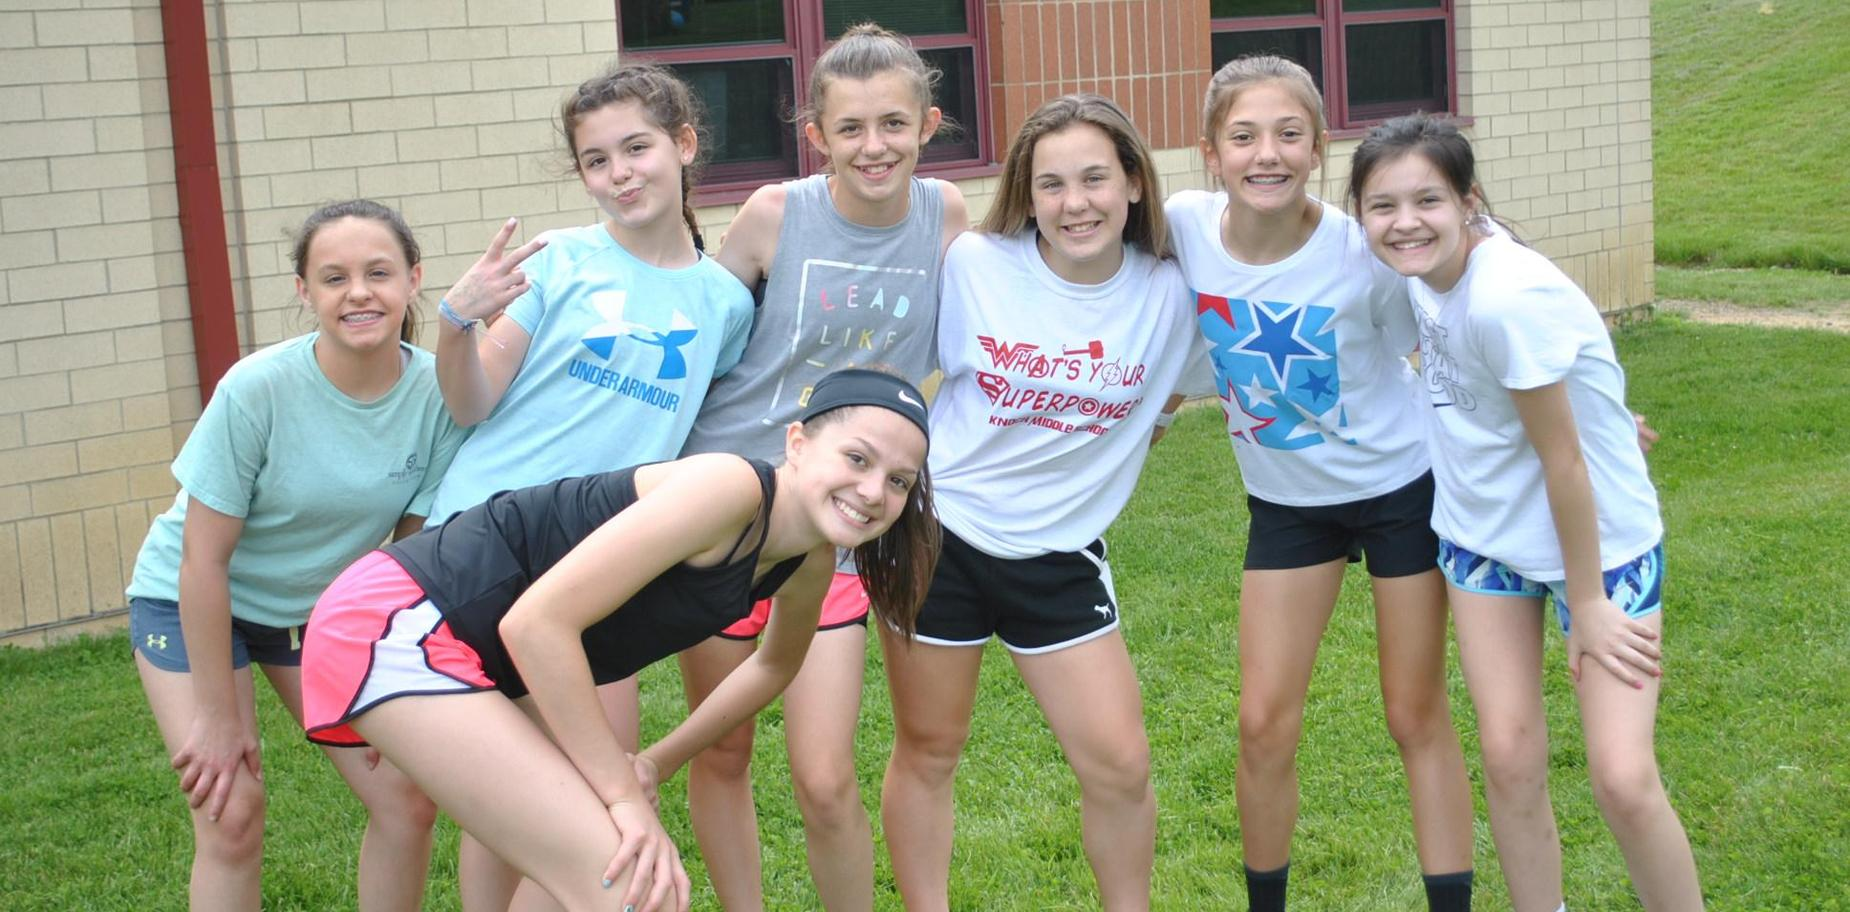 KMS Students at Field Day